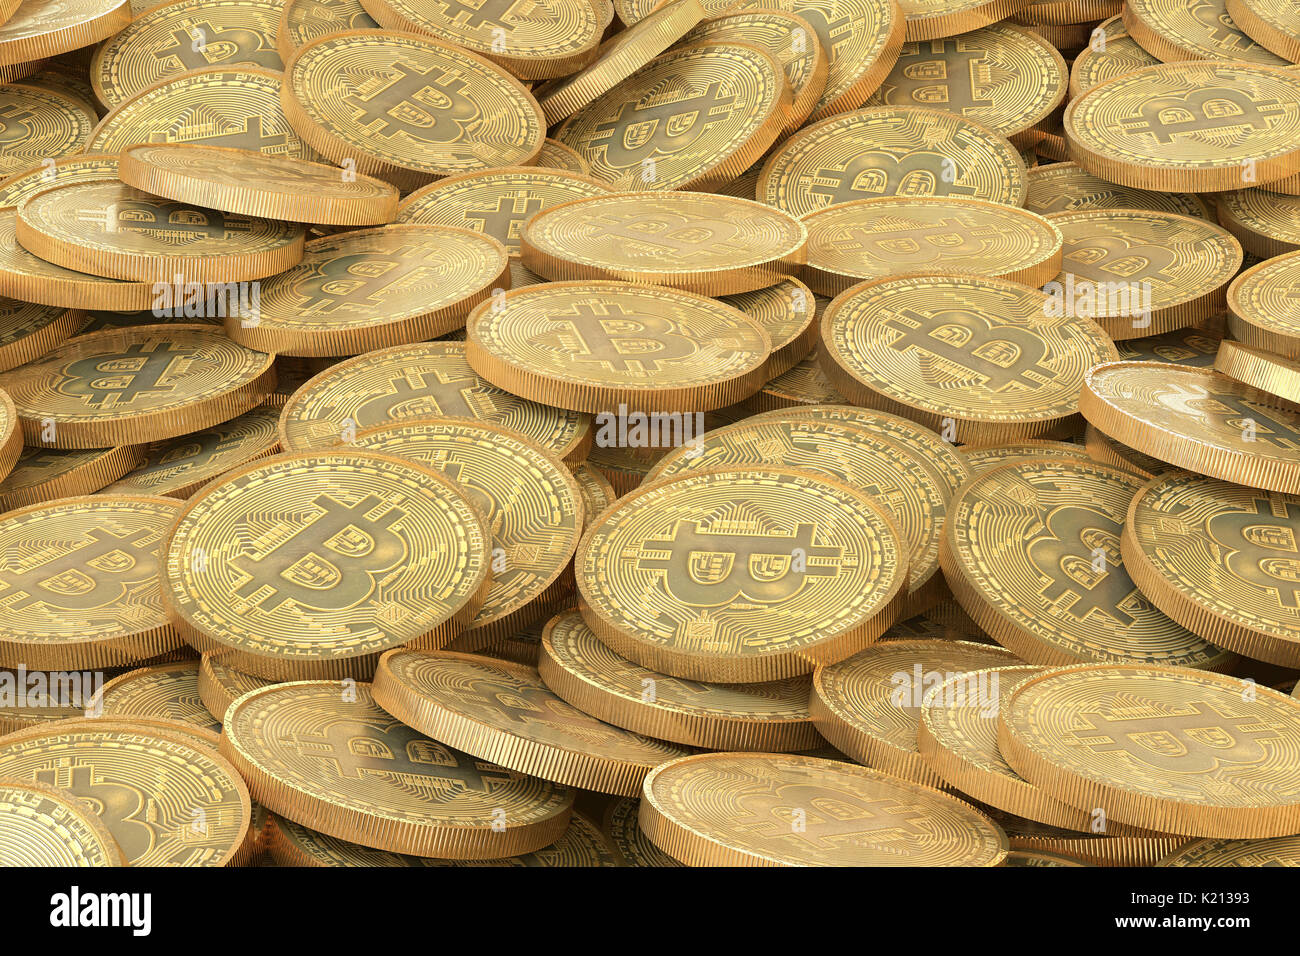 market tokens stock  market tokens stock images alamy